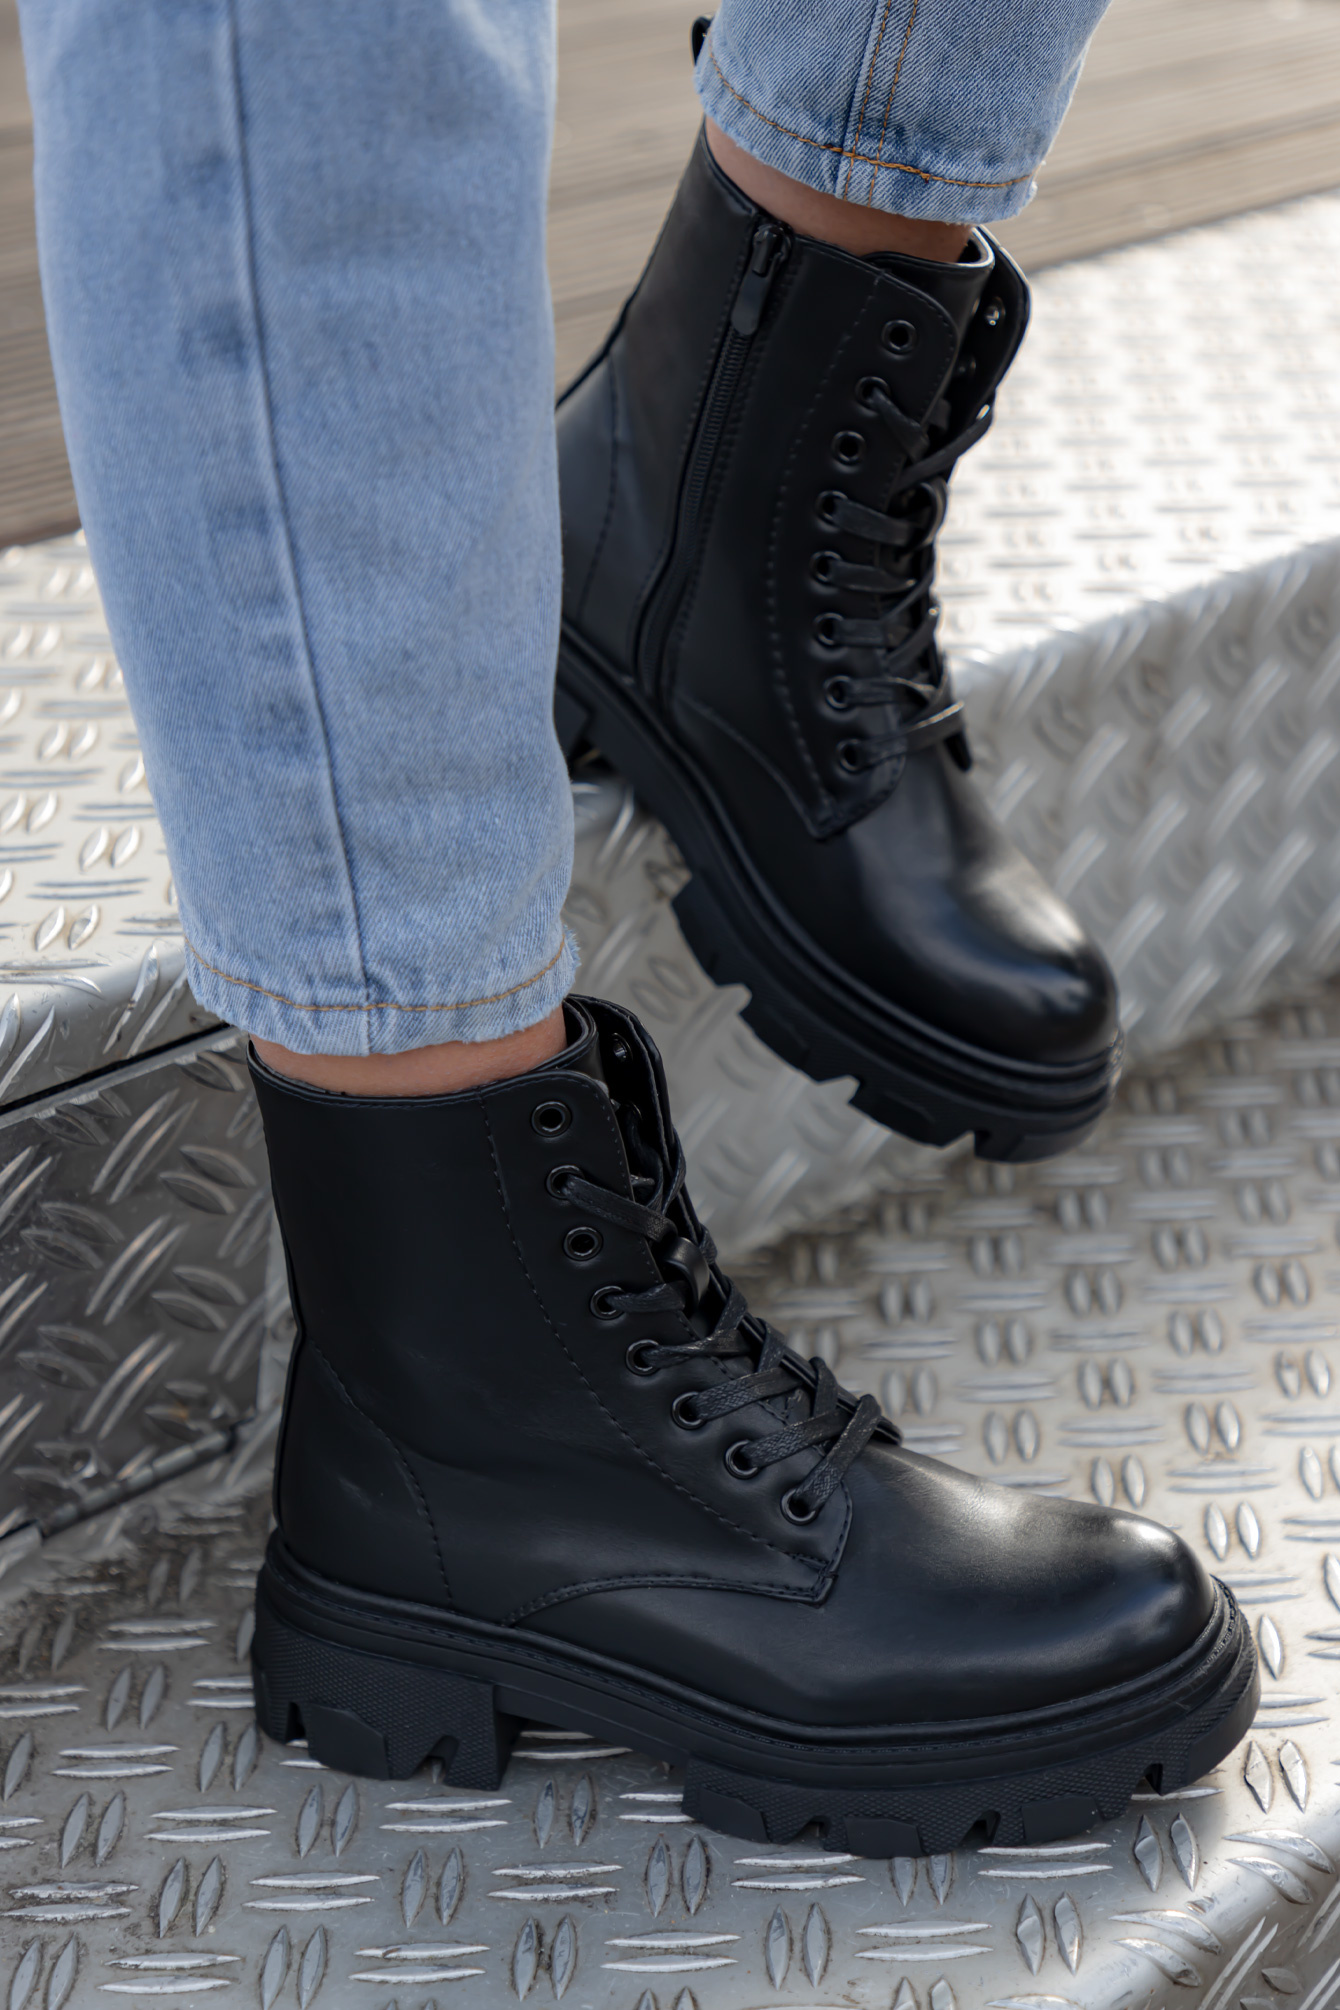 Ultimate veter boots